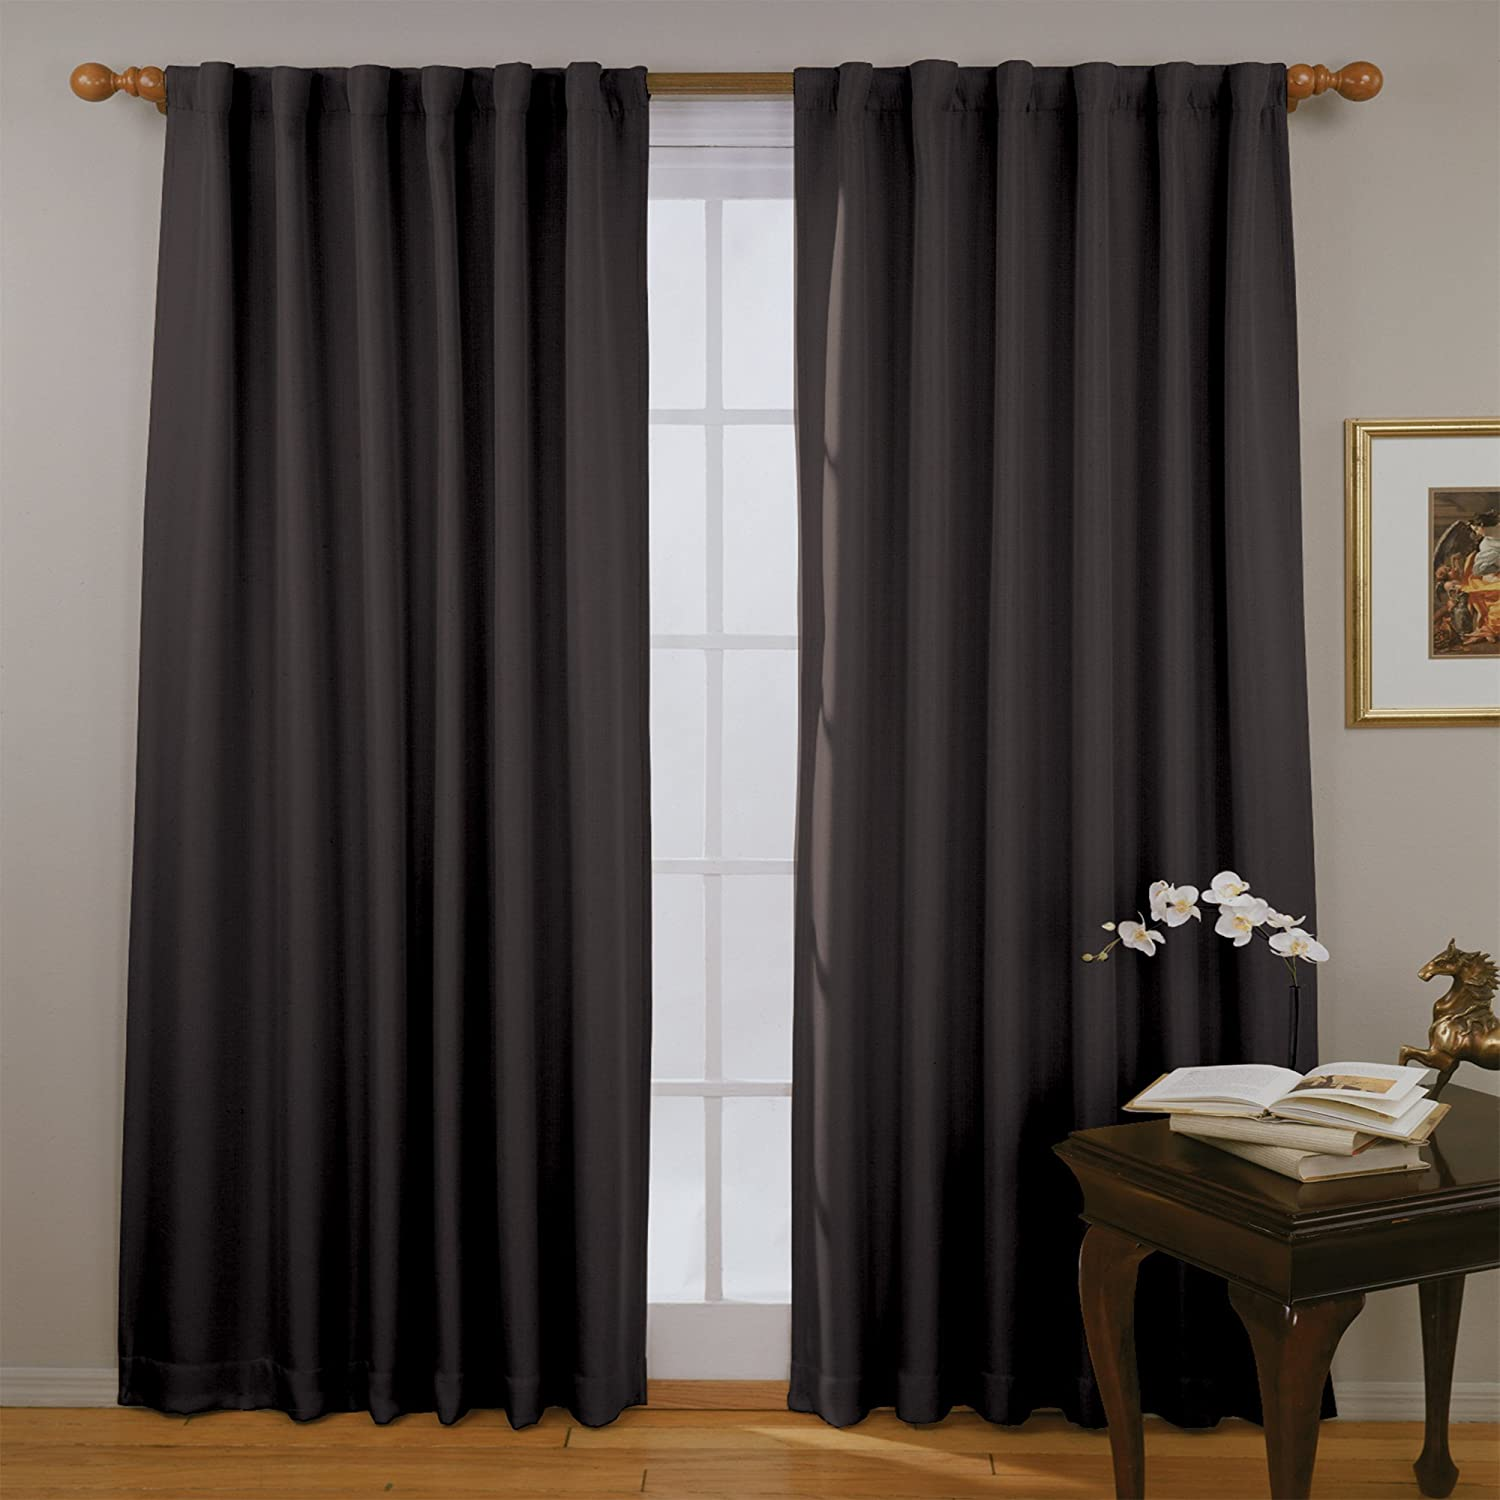 """ECLIPSE Fresno Thermal Insulated Single Panel Rod Pocket Darkening Curtains for Living Room, 52"""" x 108"""", Black"""